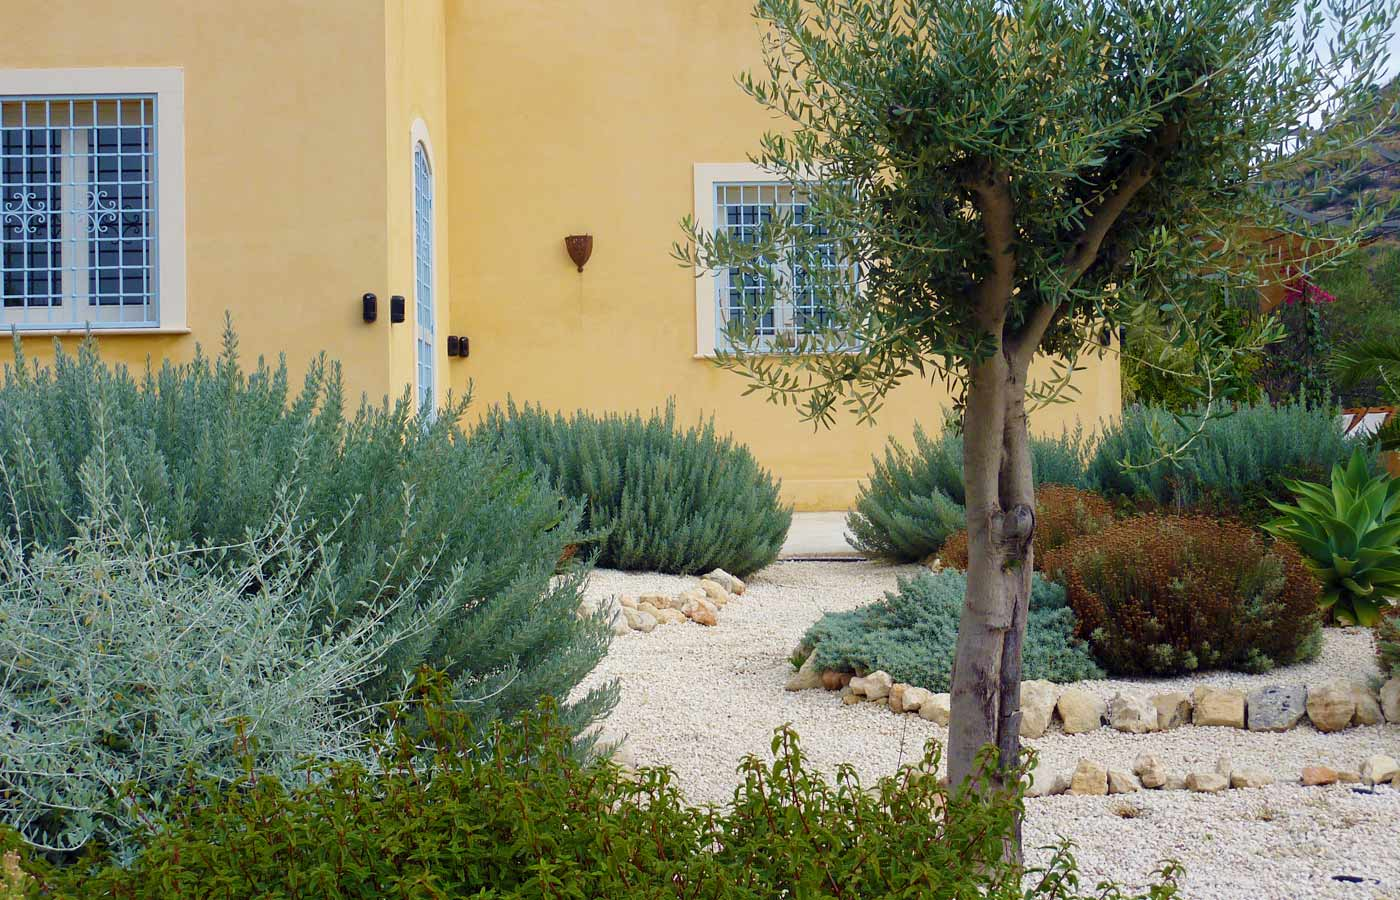 Mediterranean Garden Design for Rural Garden in Sicily